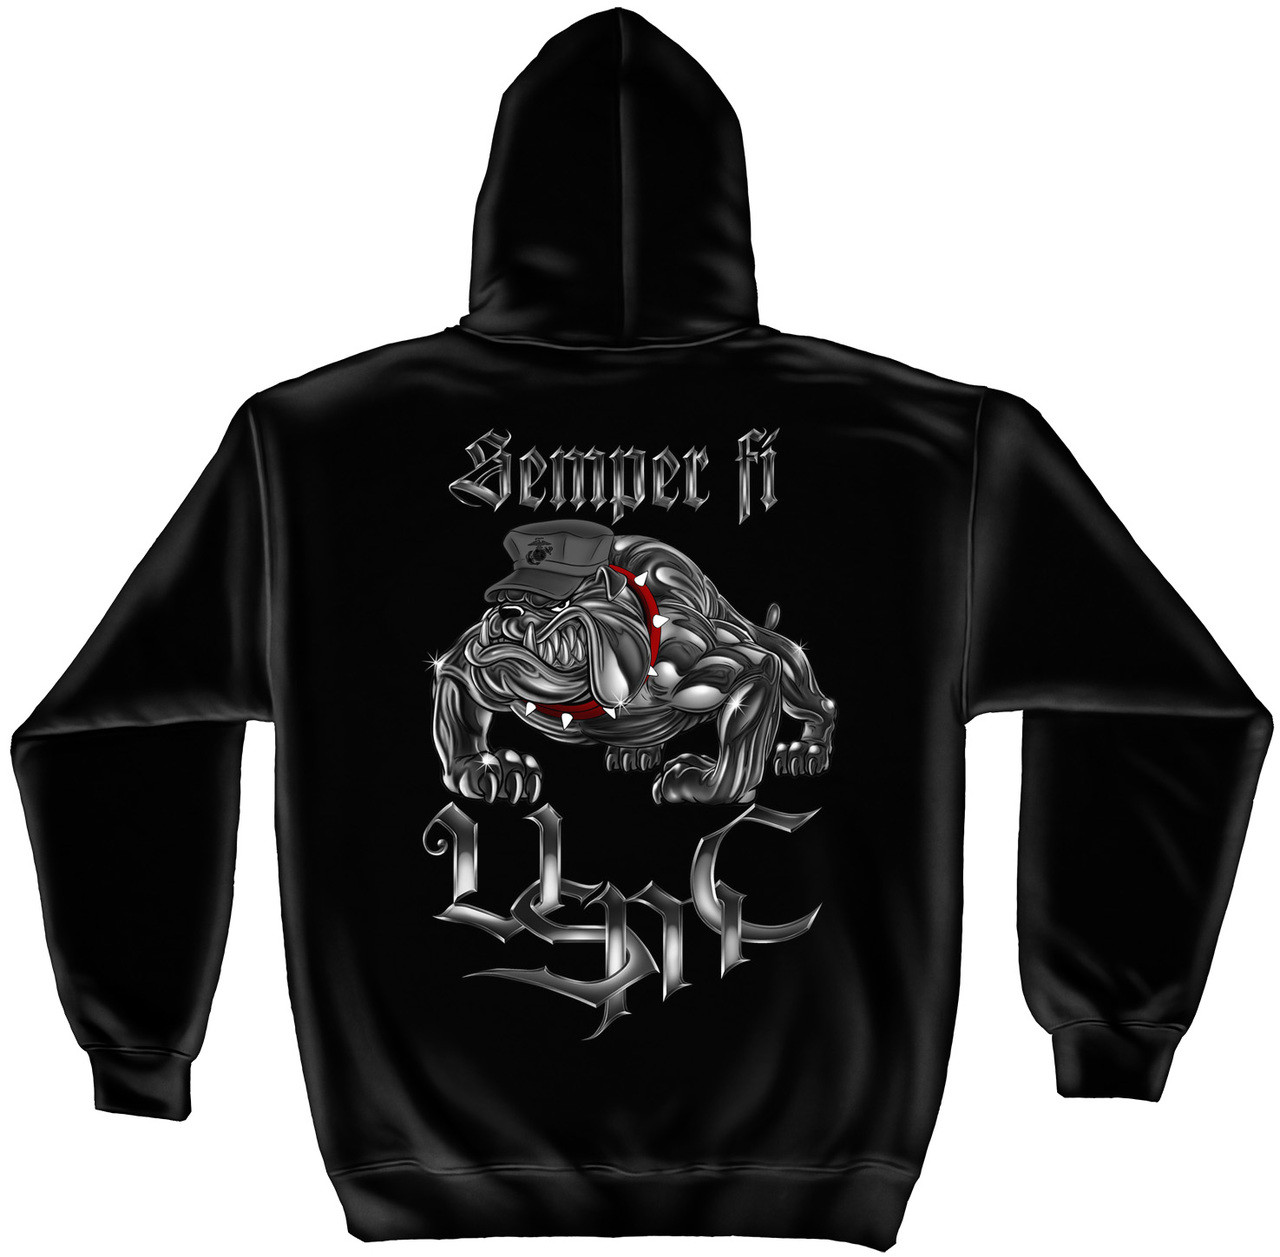 """**(NEW-OFFICIALLY-LICENSED,""""SEMPER-FI-MARINE-DEVIL-DOG/DRILL-DOG-MASCOT & U.S.M.C./SPECIAL-SCRIPT-LETTERING,NICE-DETAILED-CUSTOM-GRAPHIC-PRINTED/PREMIUM-DOUBLE-SIDED-PULLOVER-WARM-FLEECE-HOODIES:)**"""